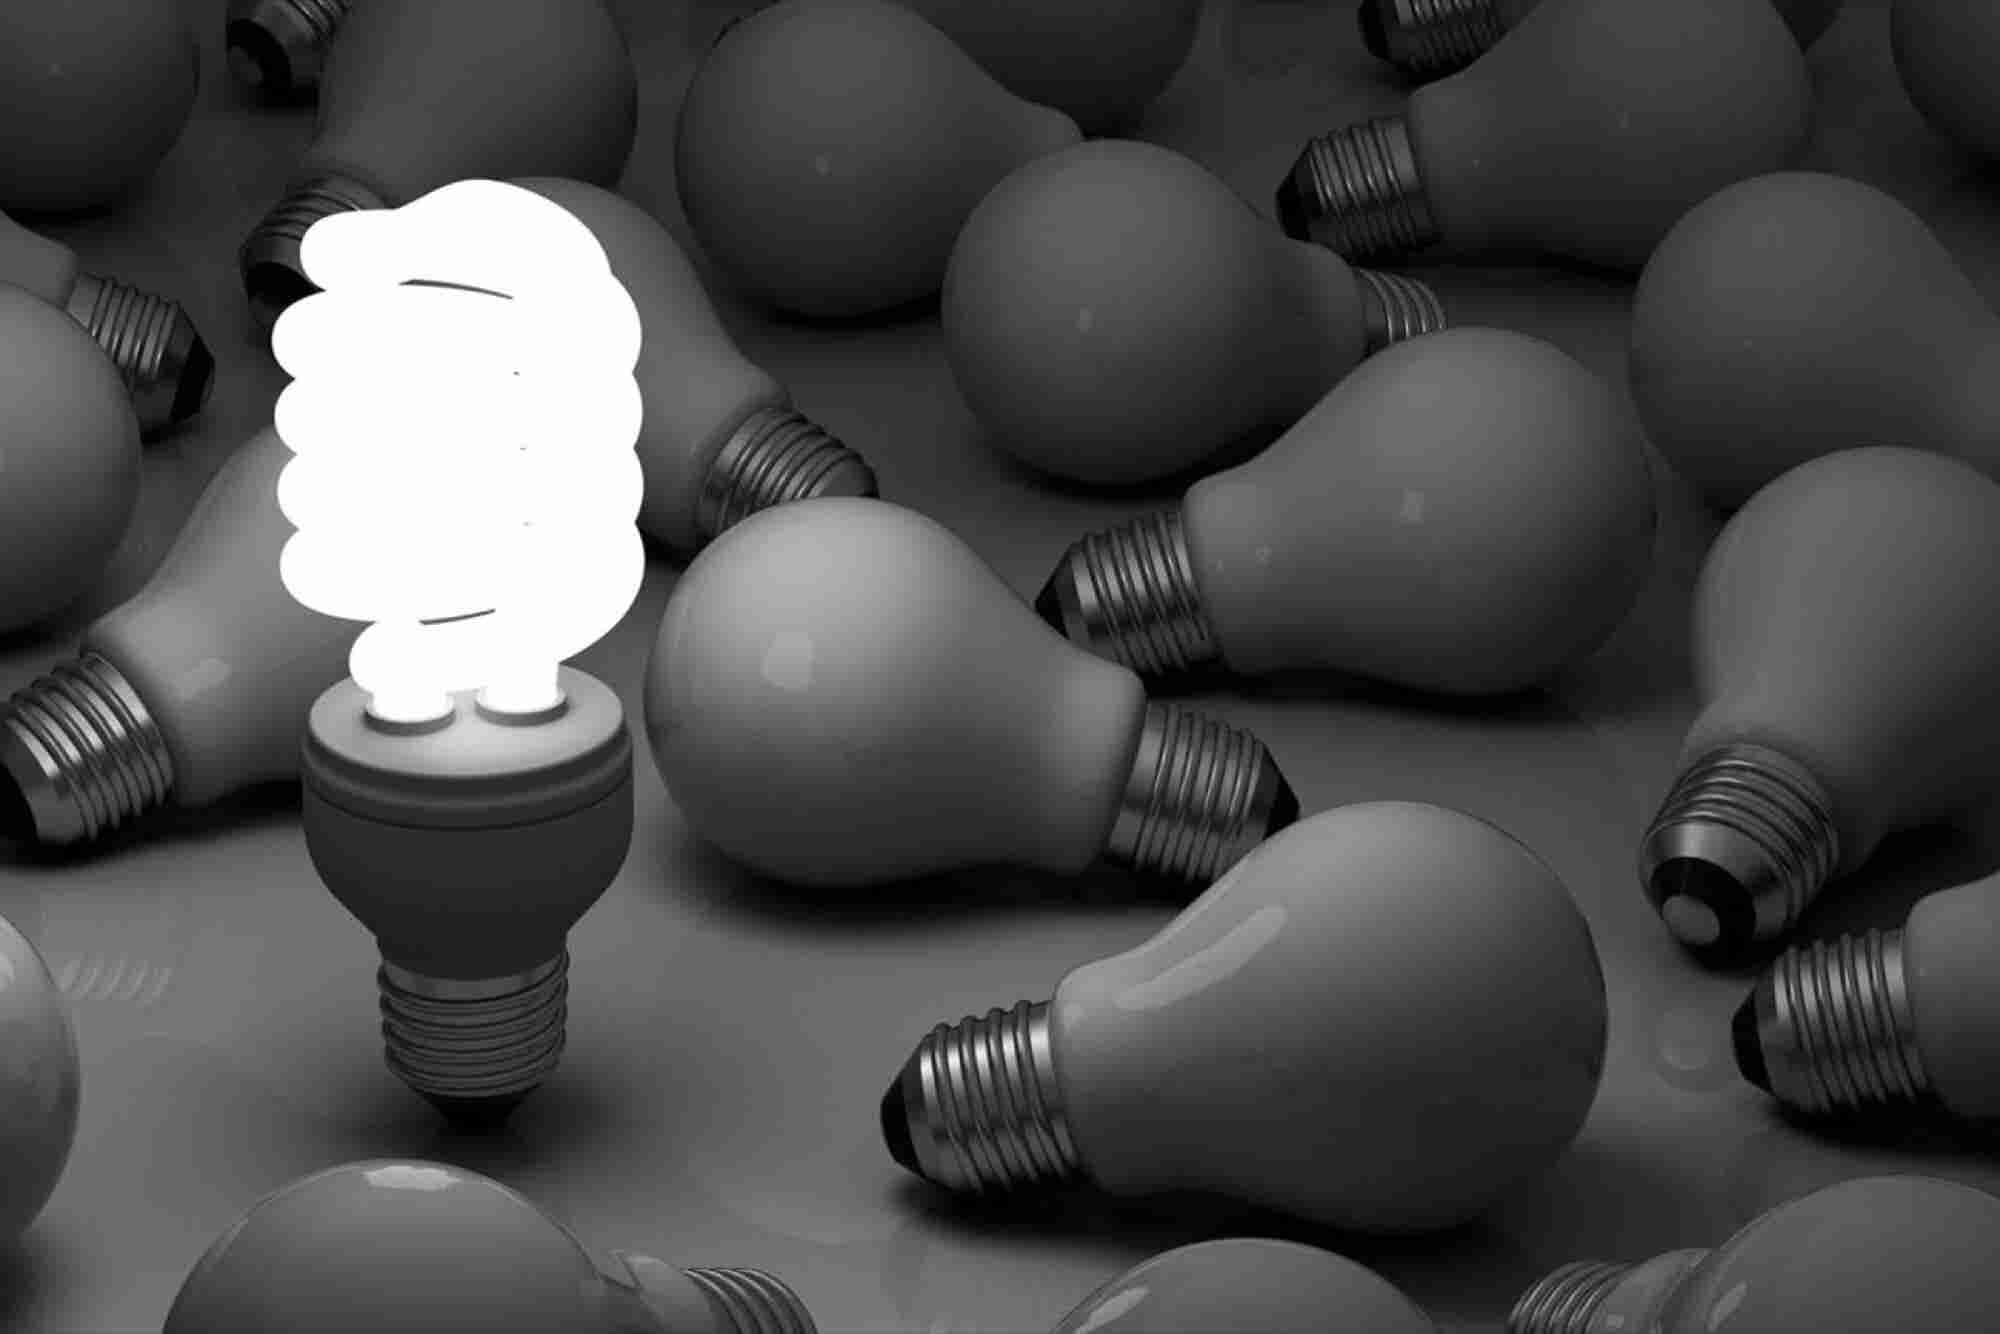 Stand Out From the Crowd: 3 Ways to Put a Spotlight on Your Company